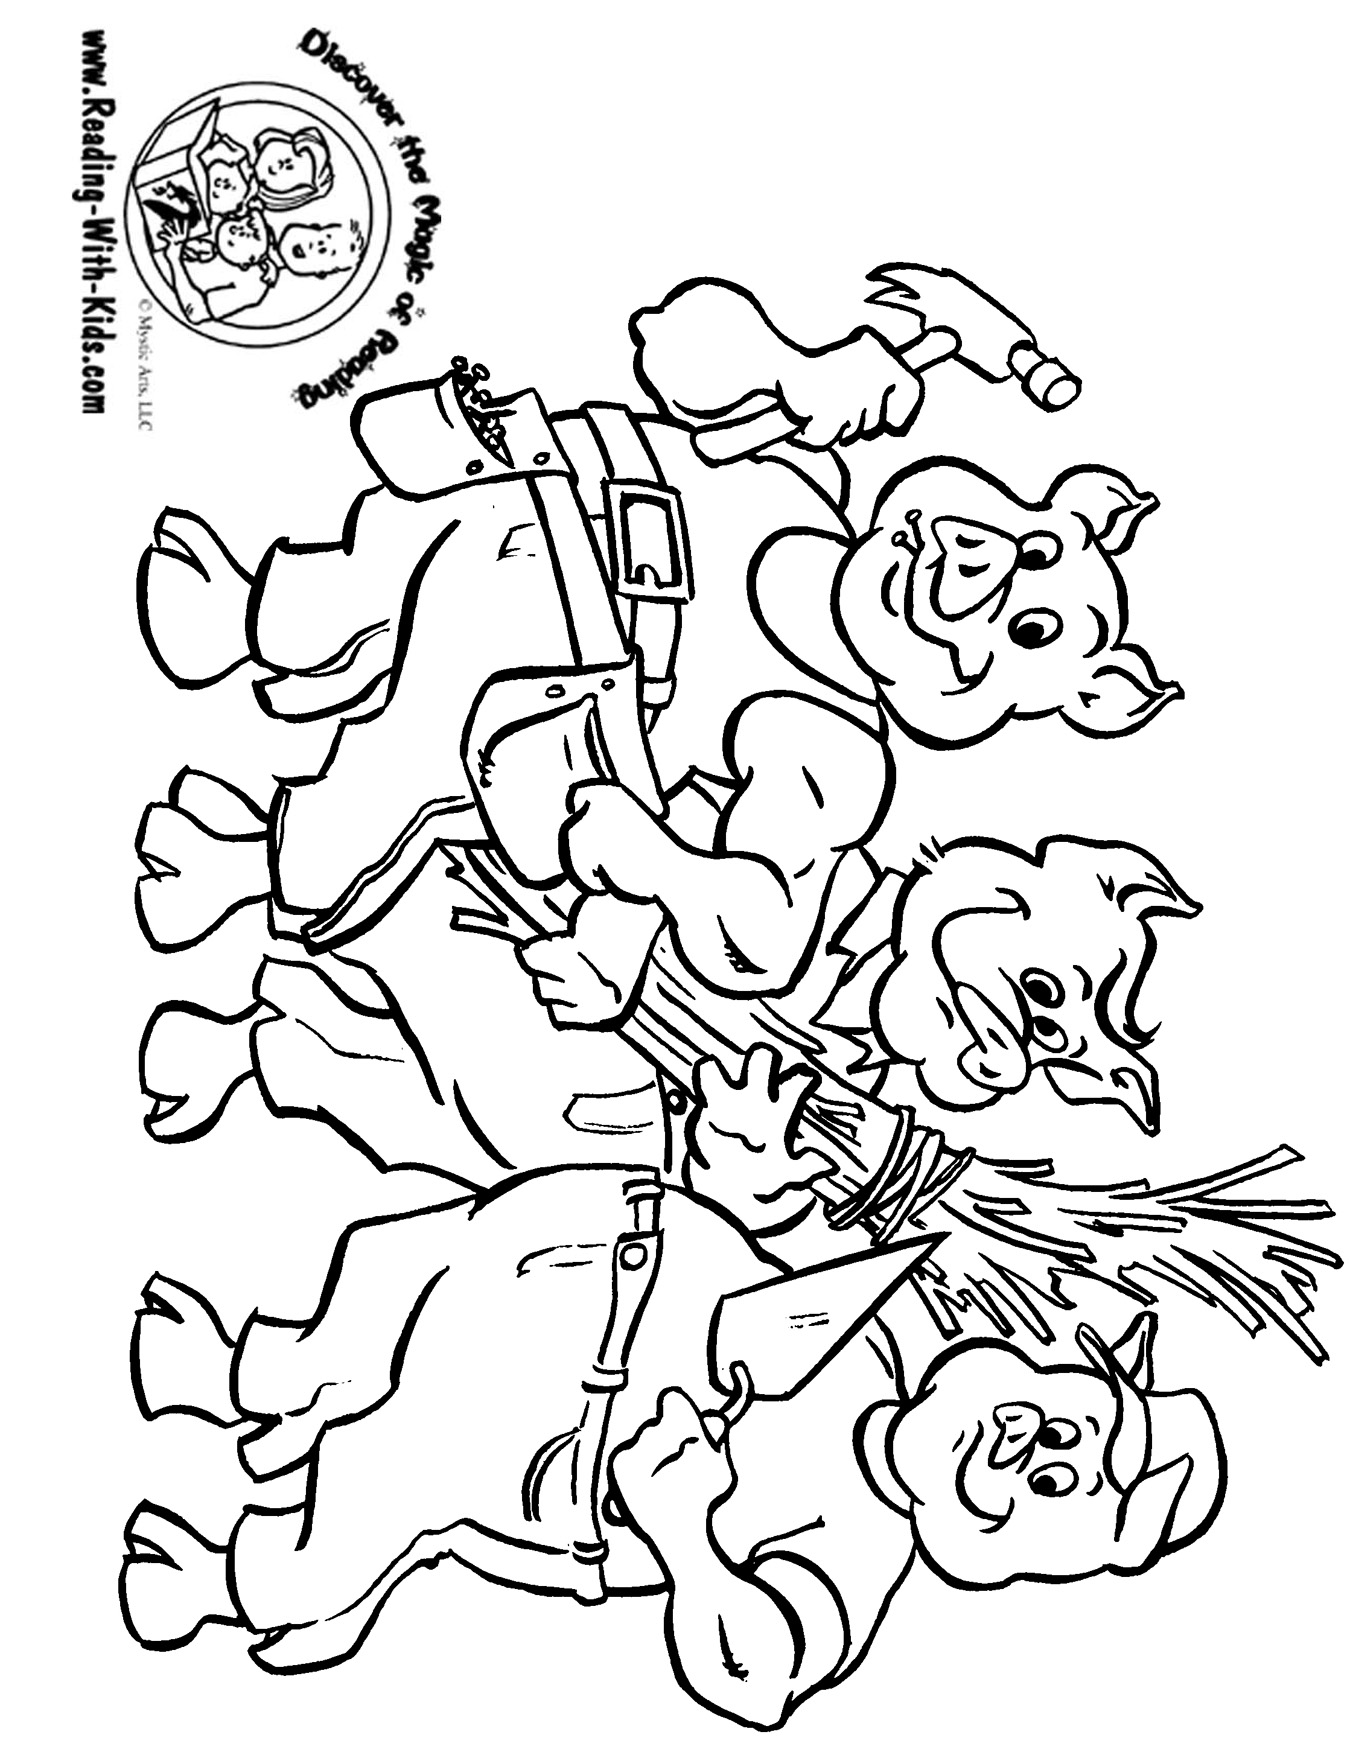 ... Five Little Ducks coloring page